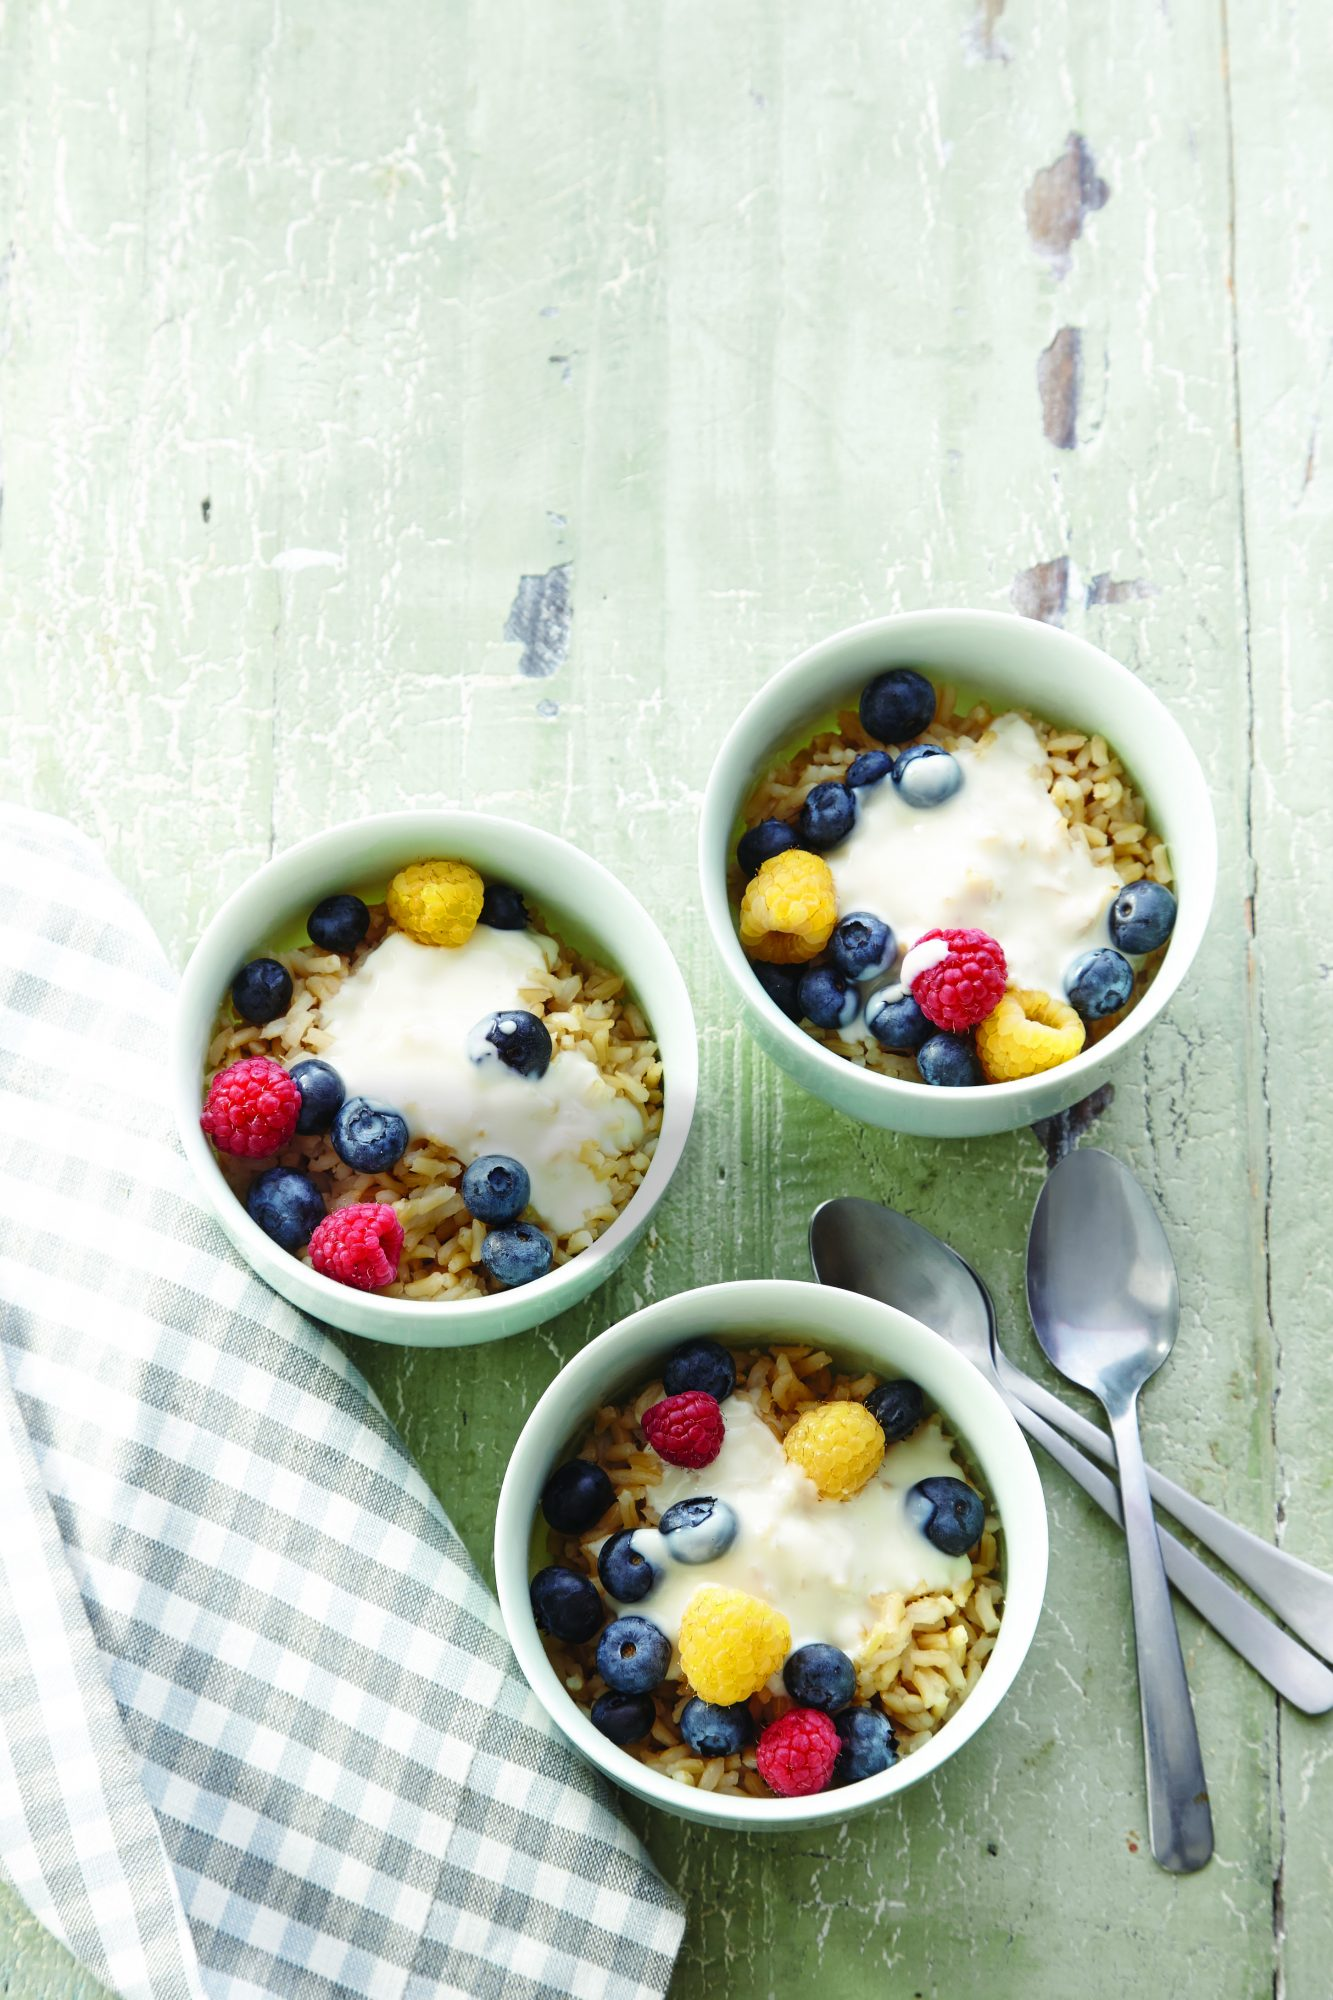 Brown Rice Cereal with Vanilla Cream and Berries